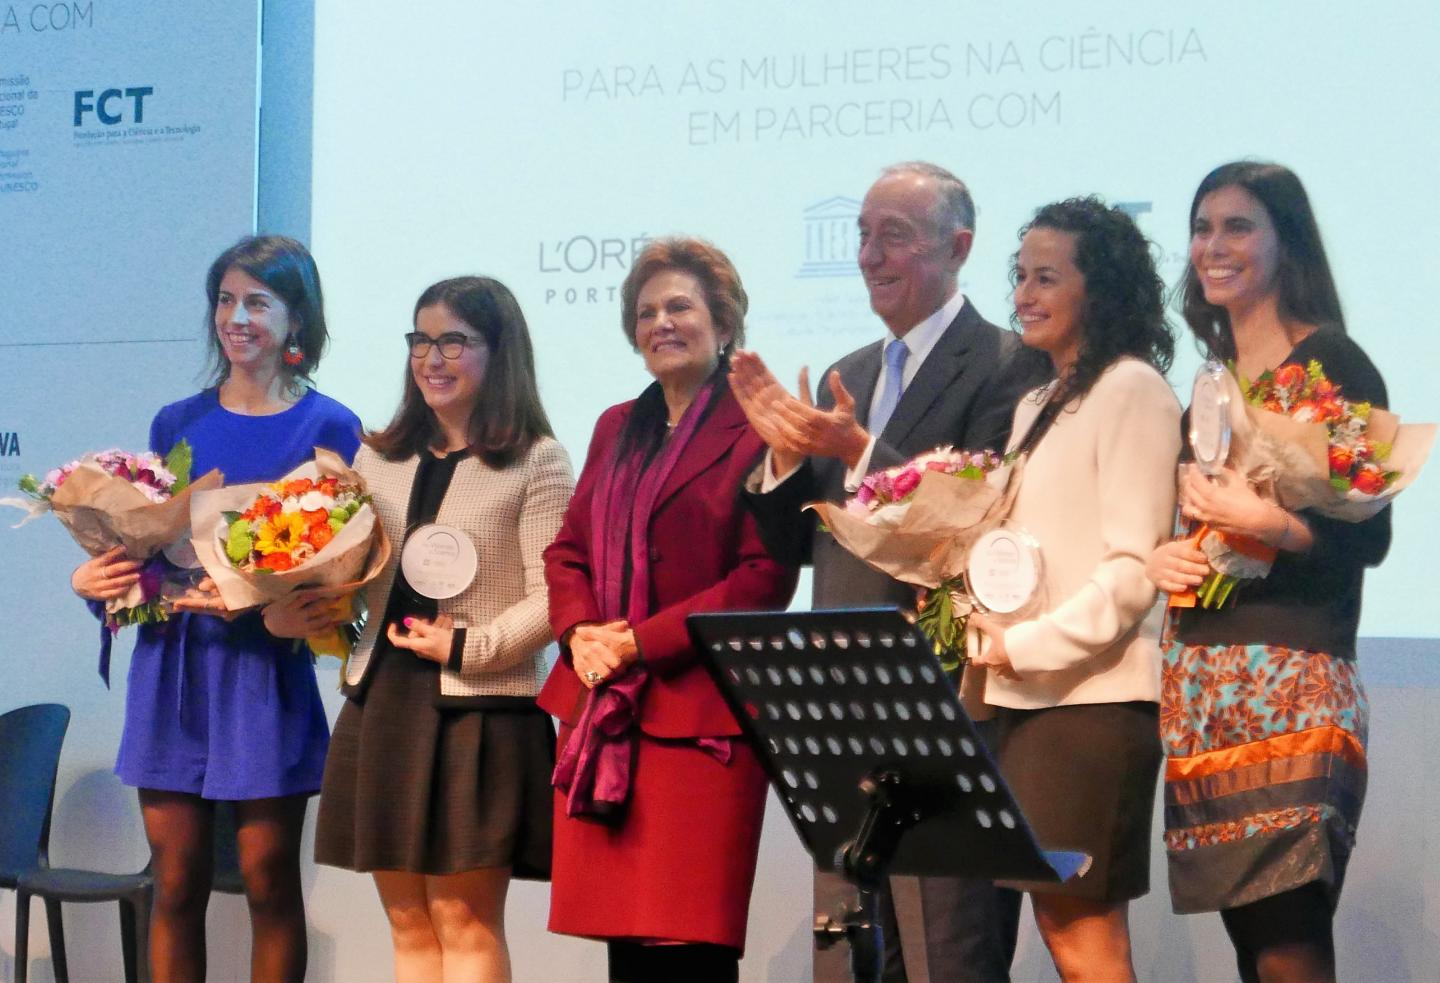 L'Oréal Portugal Medal for Women in Science